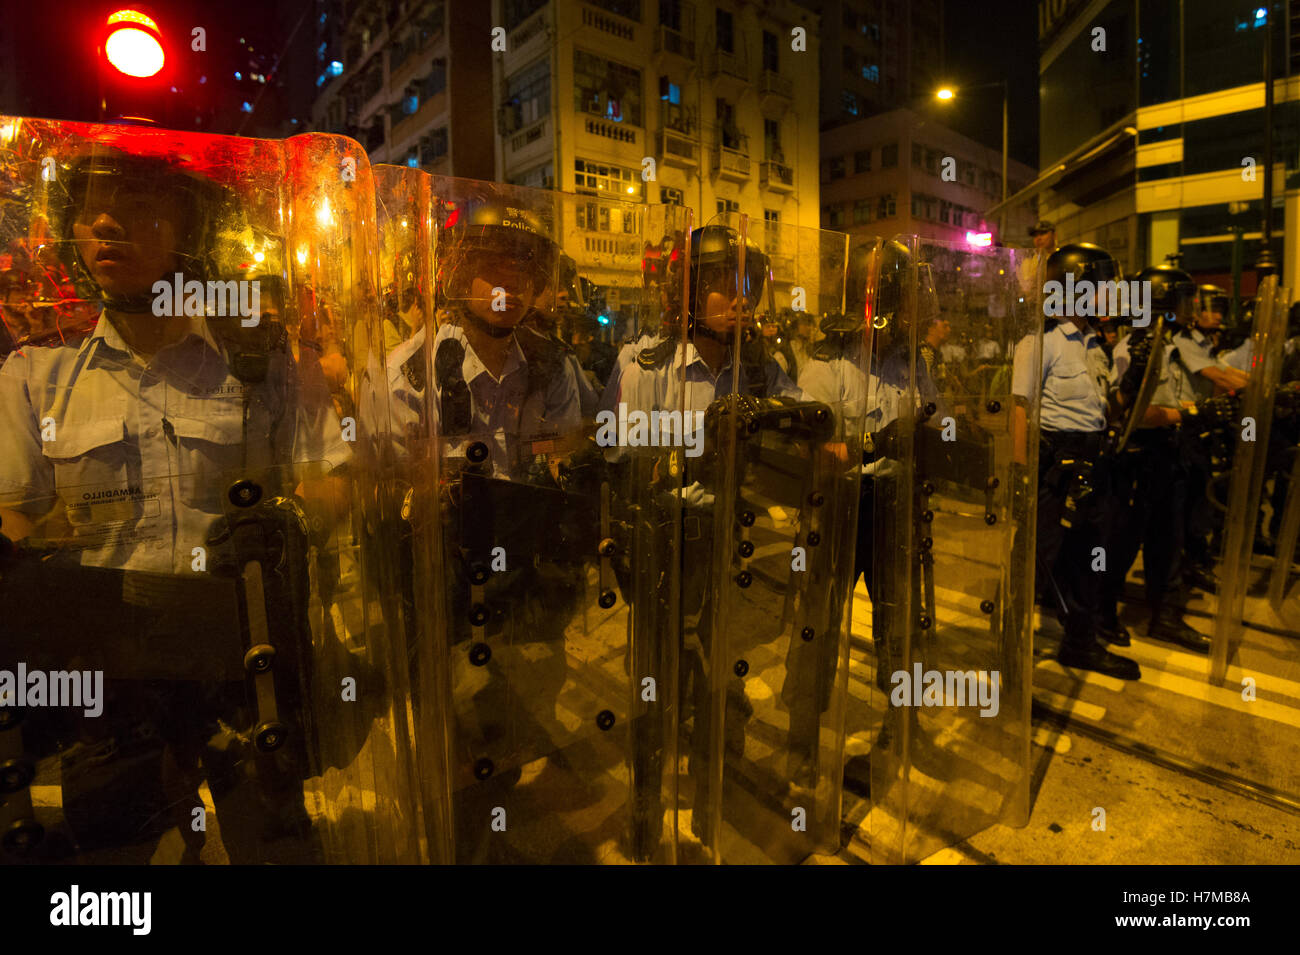 7th Nov, 2016. Police stop demonstrators as they protested against Beijing's interference in local politics, Hong Stock Photo